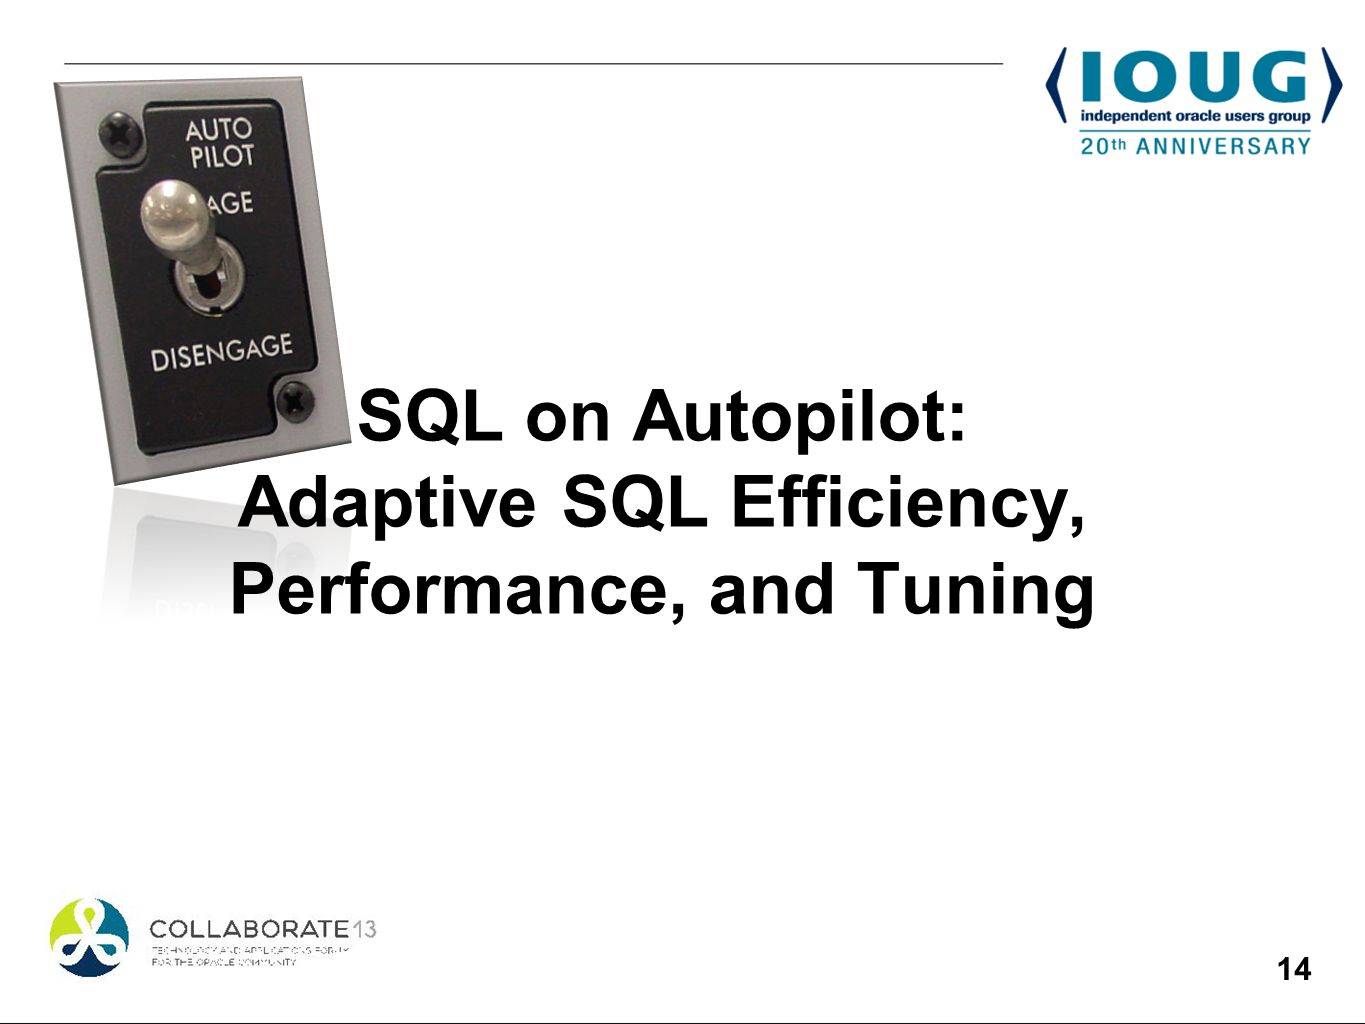 14 SQL on Autopilot: Adaptive SQL Efficiency, Performance, and Tuning